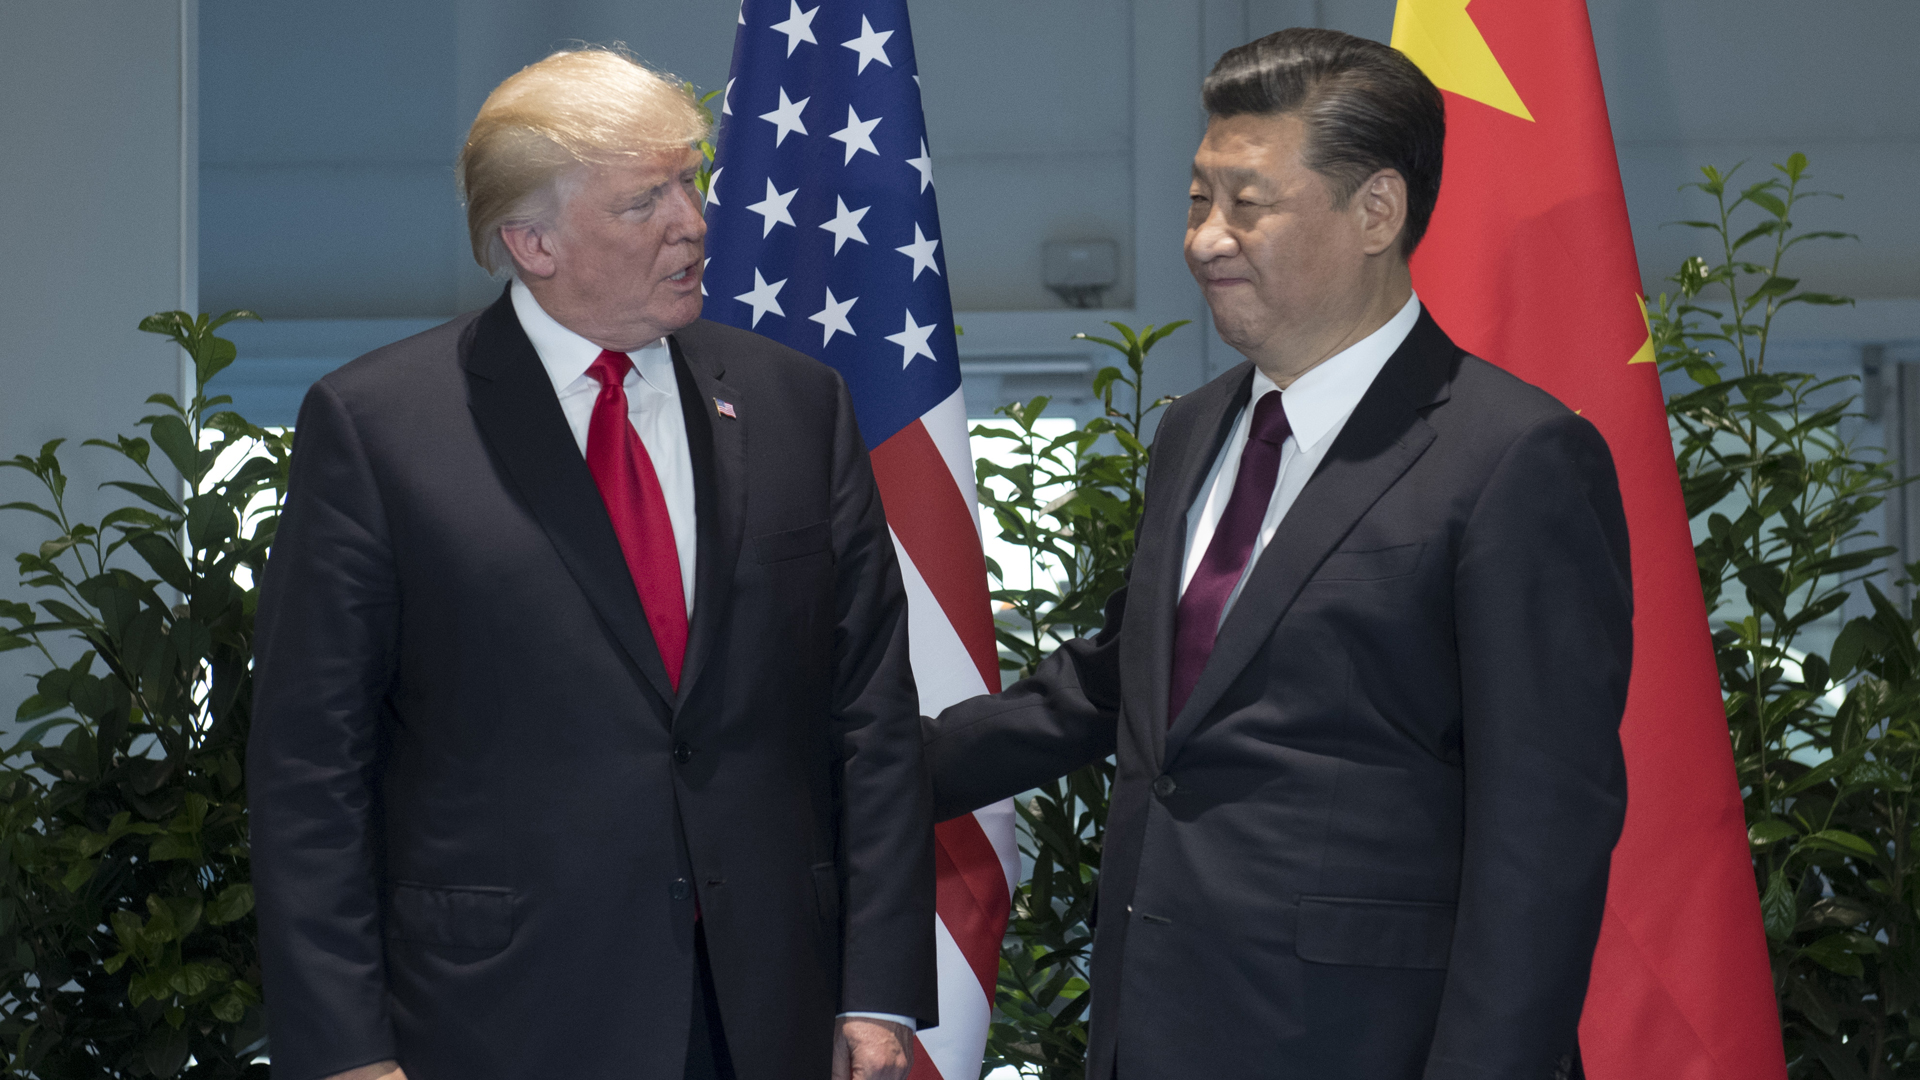 US President Donald Trump and Chinese President Xi Jinping (R) pose prior to a meeting on the sidelines of the G20 Summit in Hamburg, Germany, July 8, 2017. (Credit: SAUL LOEB/AFP/Getty Images)